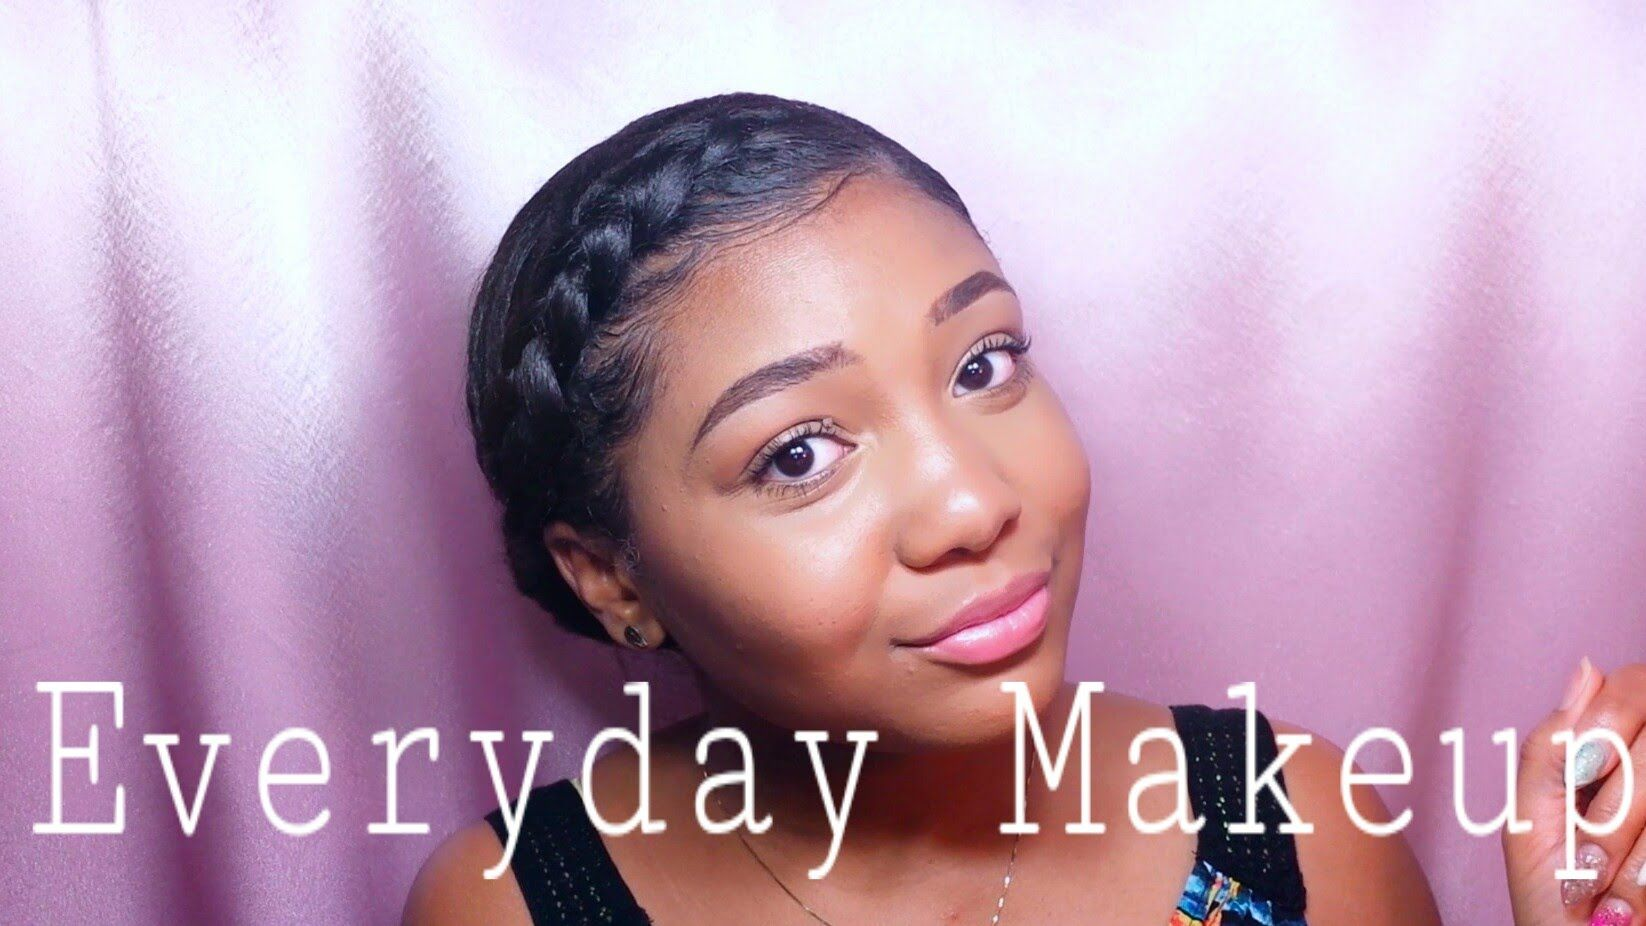 Asian hairstyles easy everyday makeup everyday makeup routine and